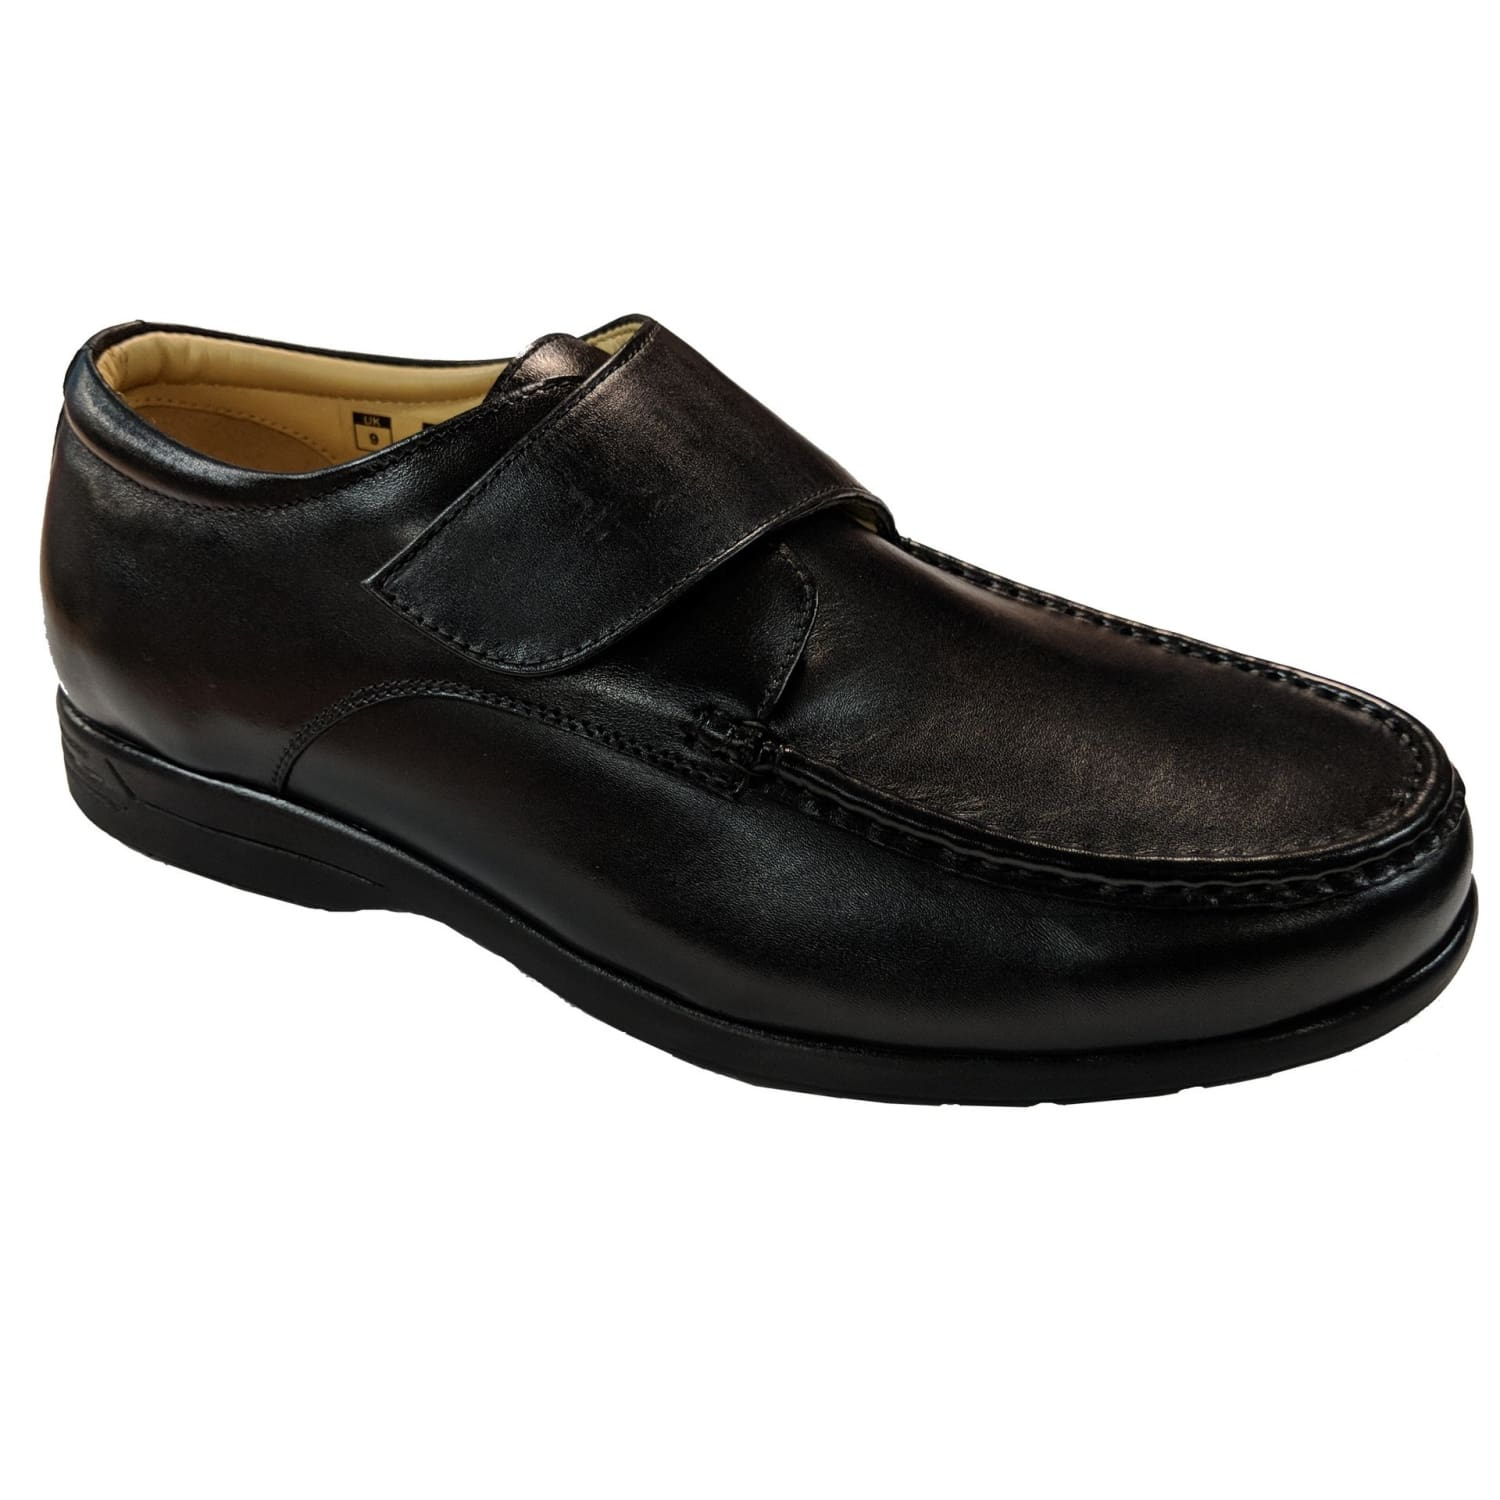 Fleet & Foster Shoes - Fred - Black 1